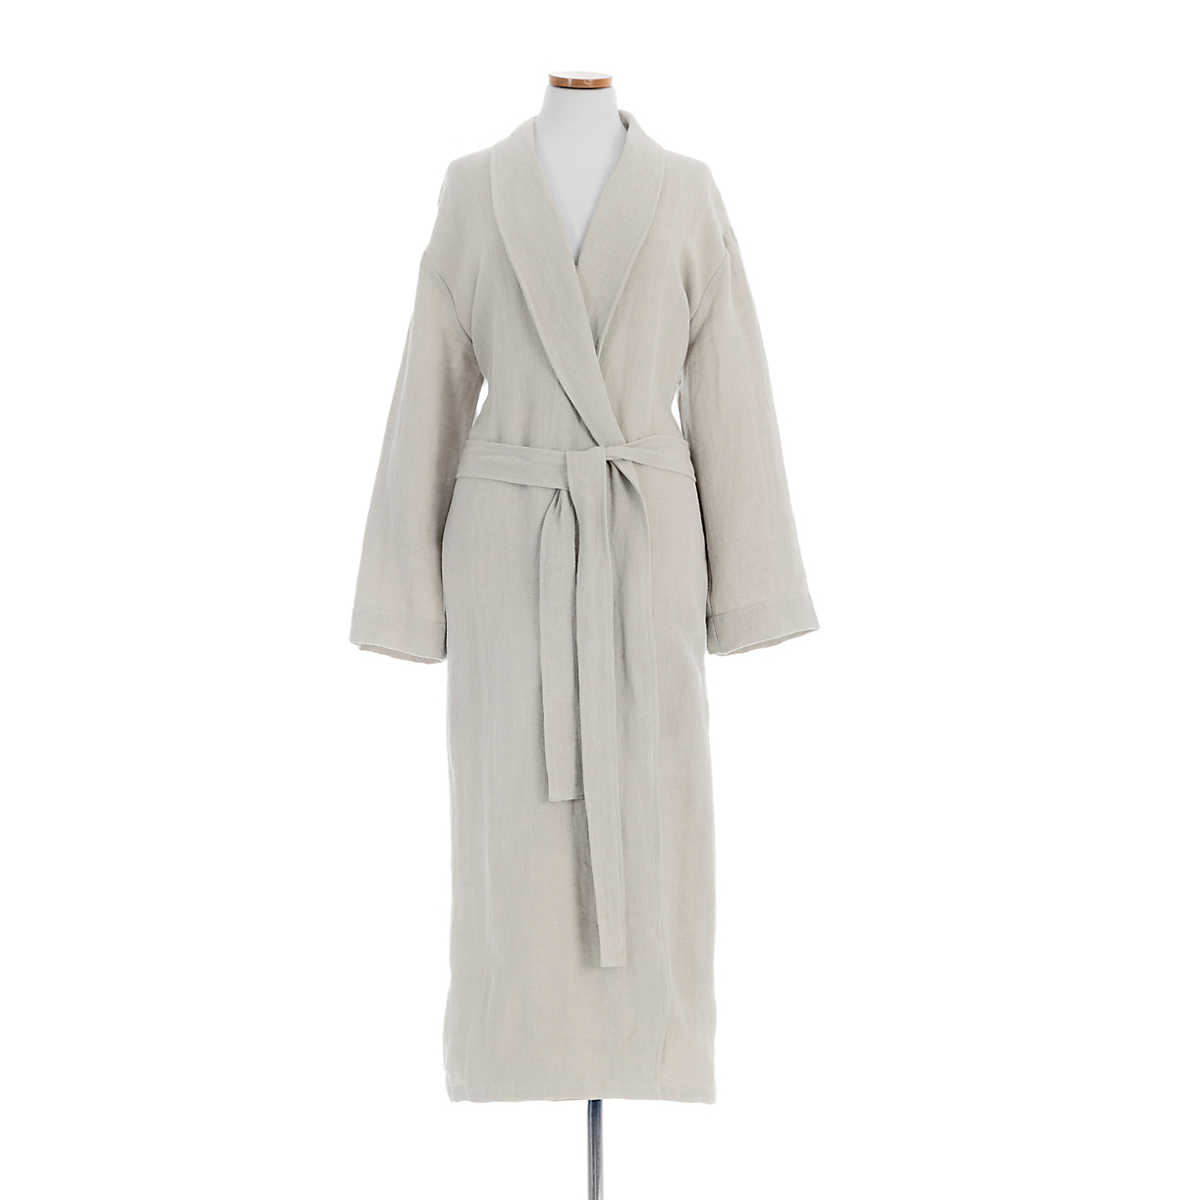 Stone Washed Linen Pearl Grey Robe The Outlet